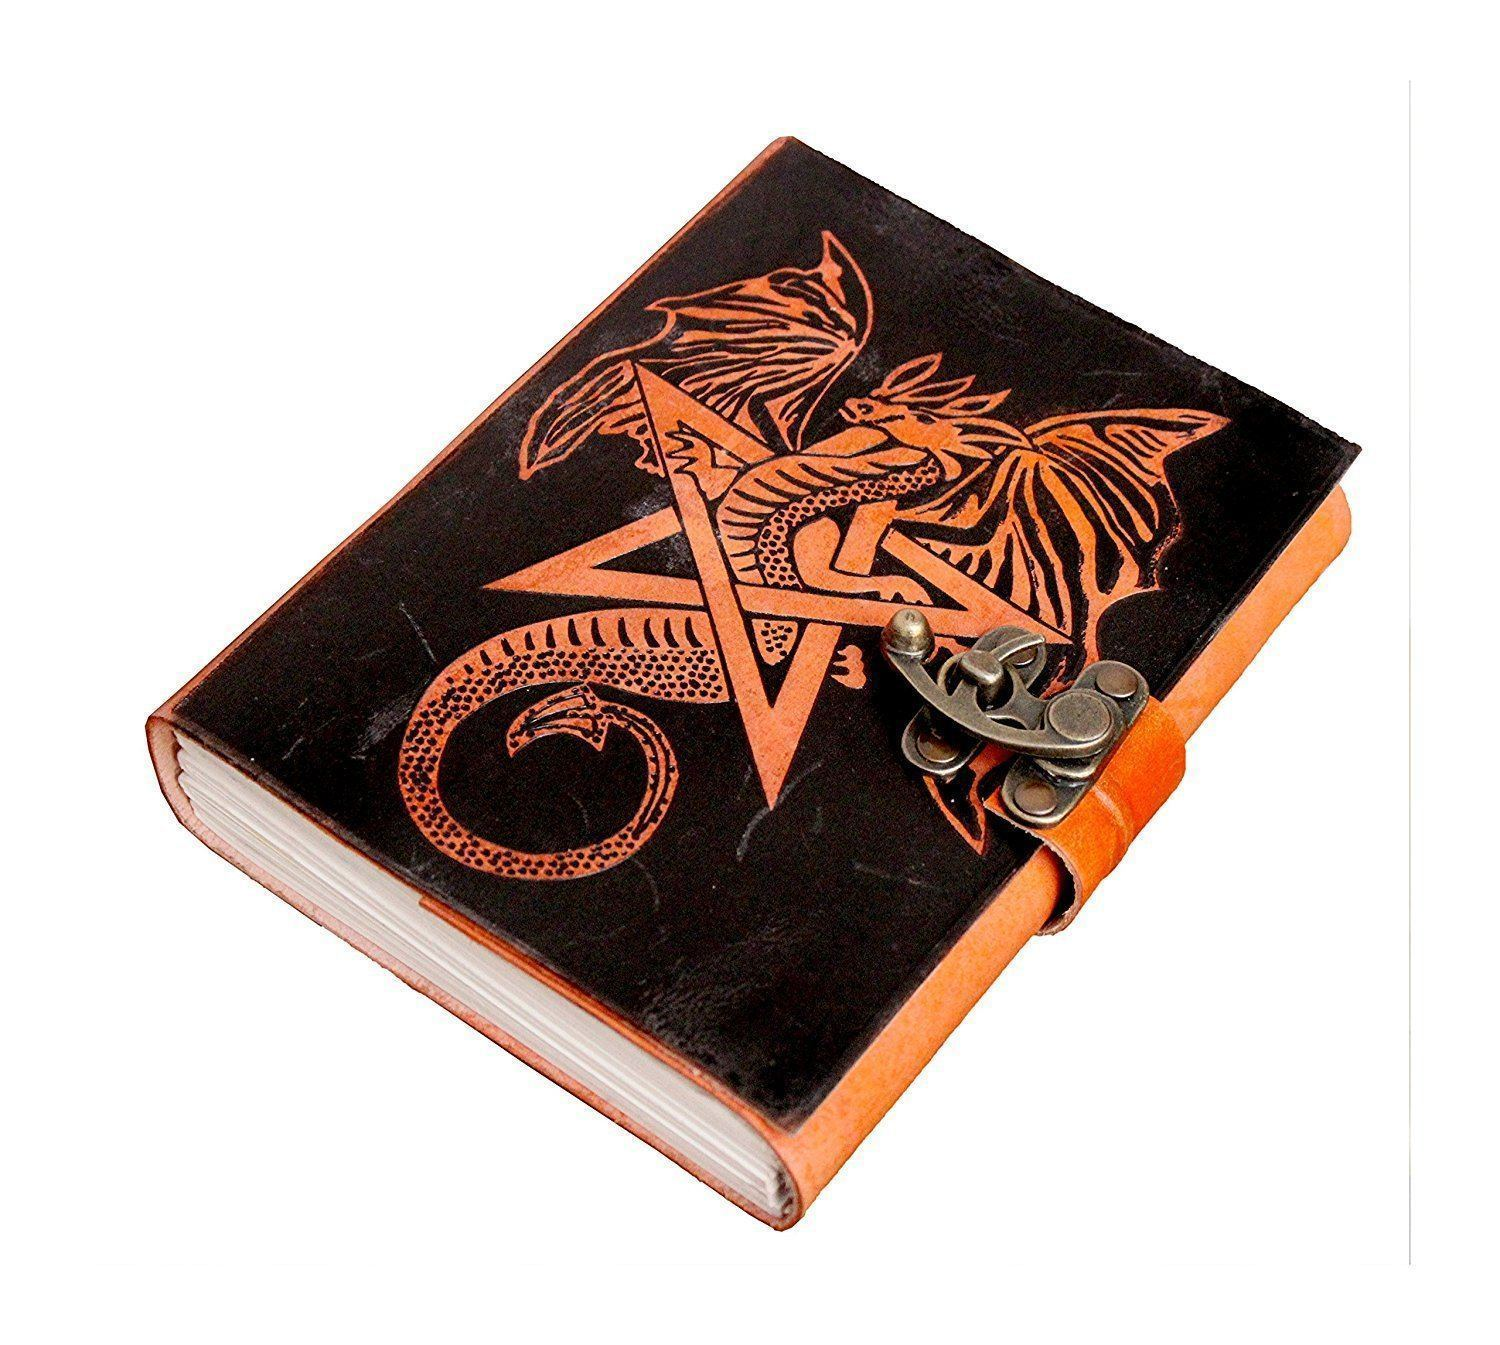 ININDIA Pure Genuine Real Vintage Hunter Leather Handmade Paper Notebook Diary For Office Home To Write Poem Daily Update With Attractive Metal Lock And Engraved Eagle 7 Inches (All Colors)